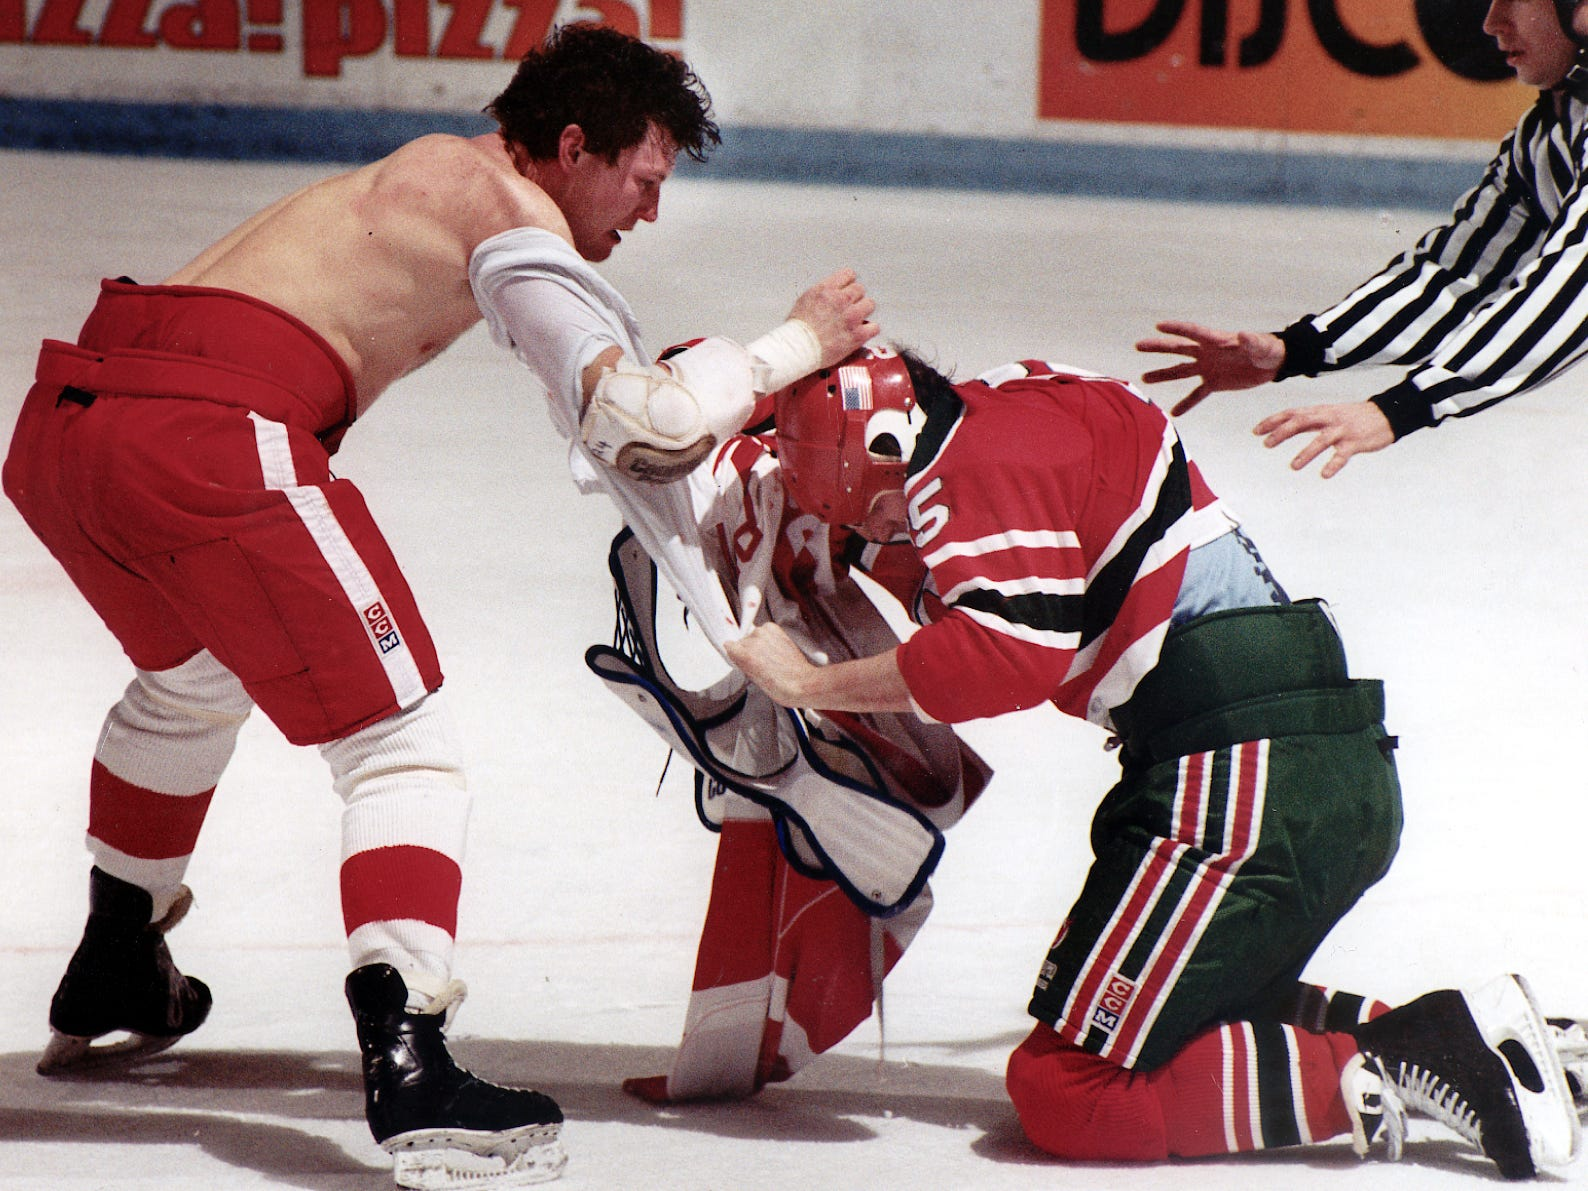 1991: The playoff streak started in an inauspicious manner. The Red Wings had modest success during the regular season, which was memorable chiefly for a titanic fight between the Red Wings' Bob Probert, left, and the New Jersey Devils' Troy Crowder. The Wings finished third in the Norris Division under coach Bryan Murray.